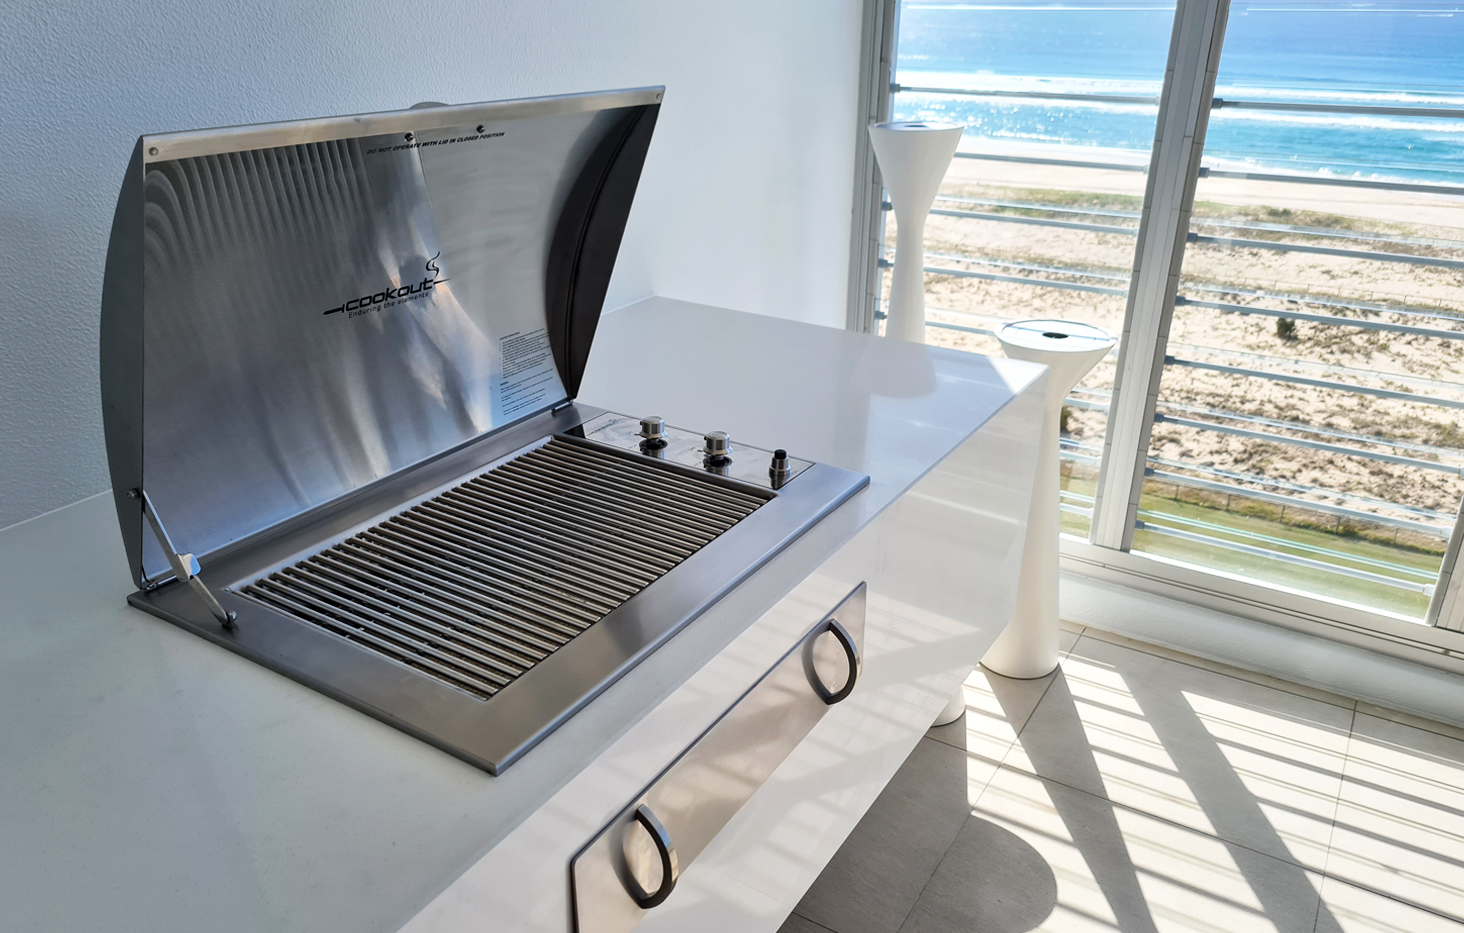 Infinity Grill Barbecue built in